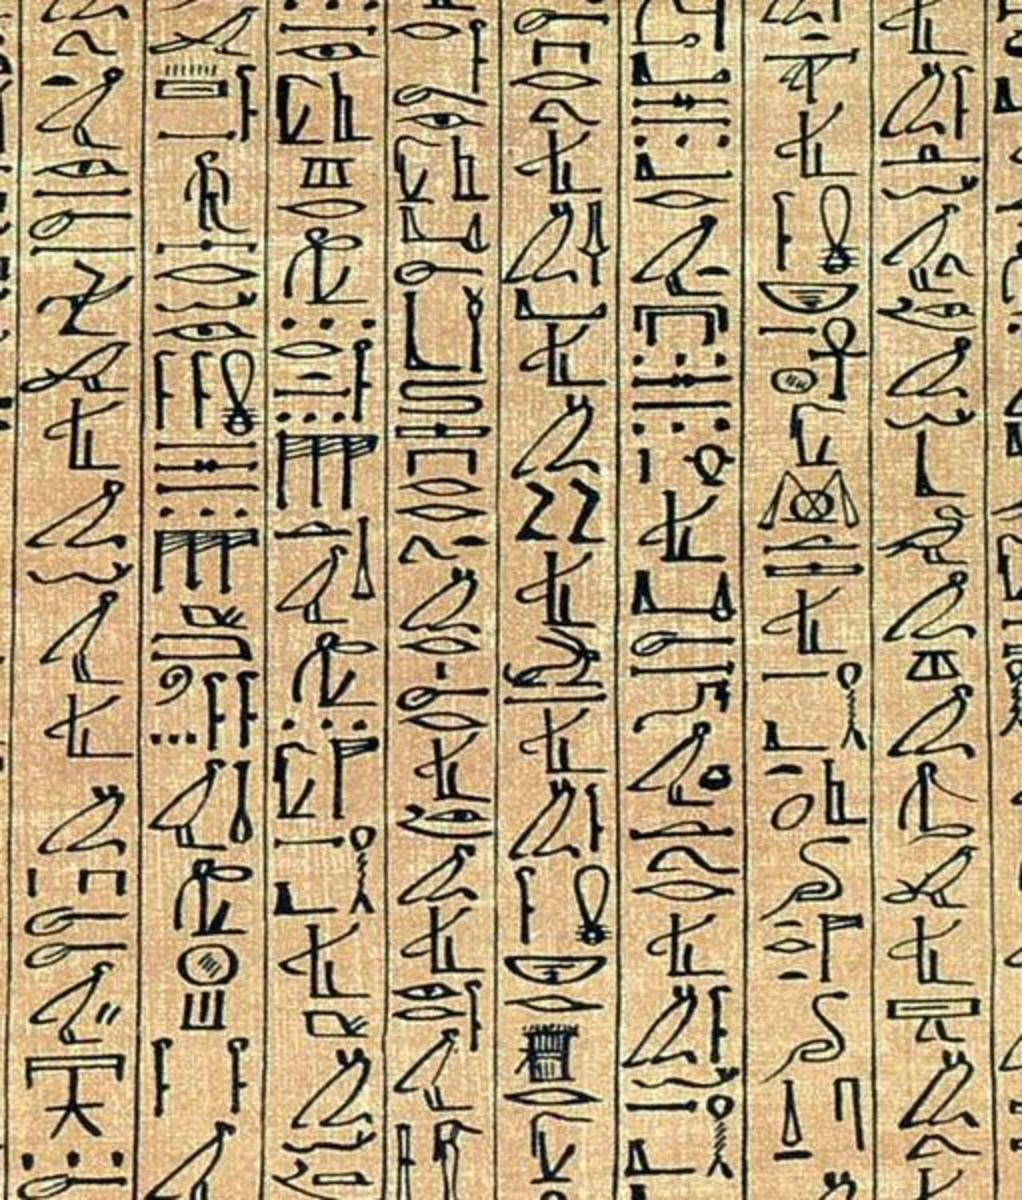 Formal writing in Egypt retained the use of pictorial symbols-hieroglyphs-for more than 3000 years. This example differs little in style from the earliest surviving inscriptions made in 3200 BC.